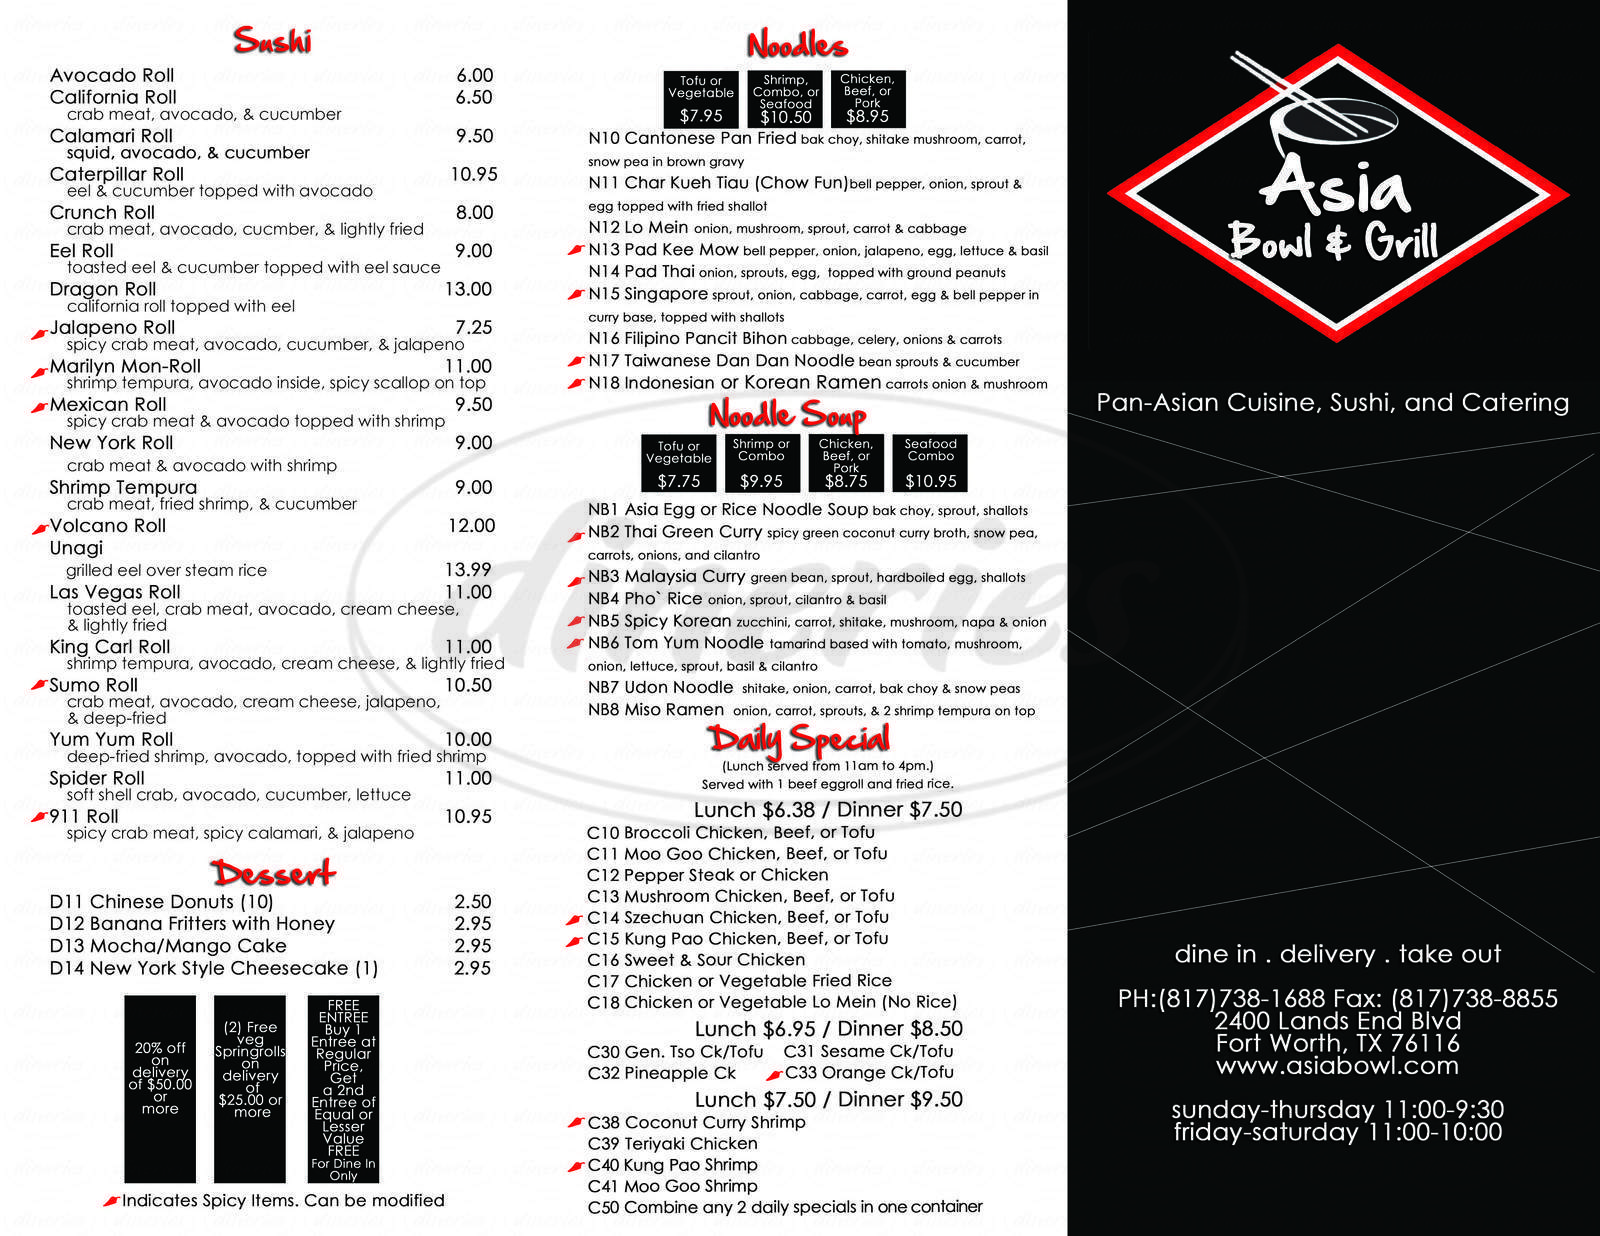 menu for Asia Bowl & Grill